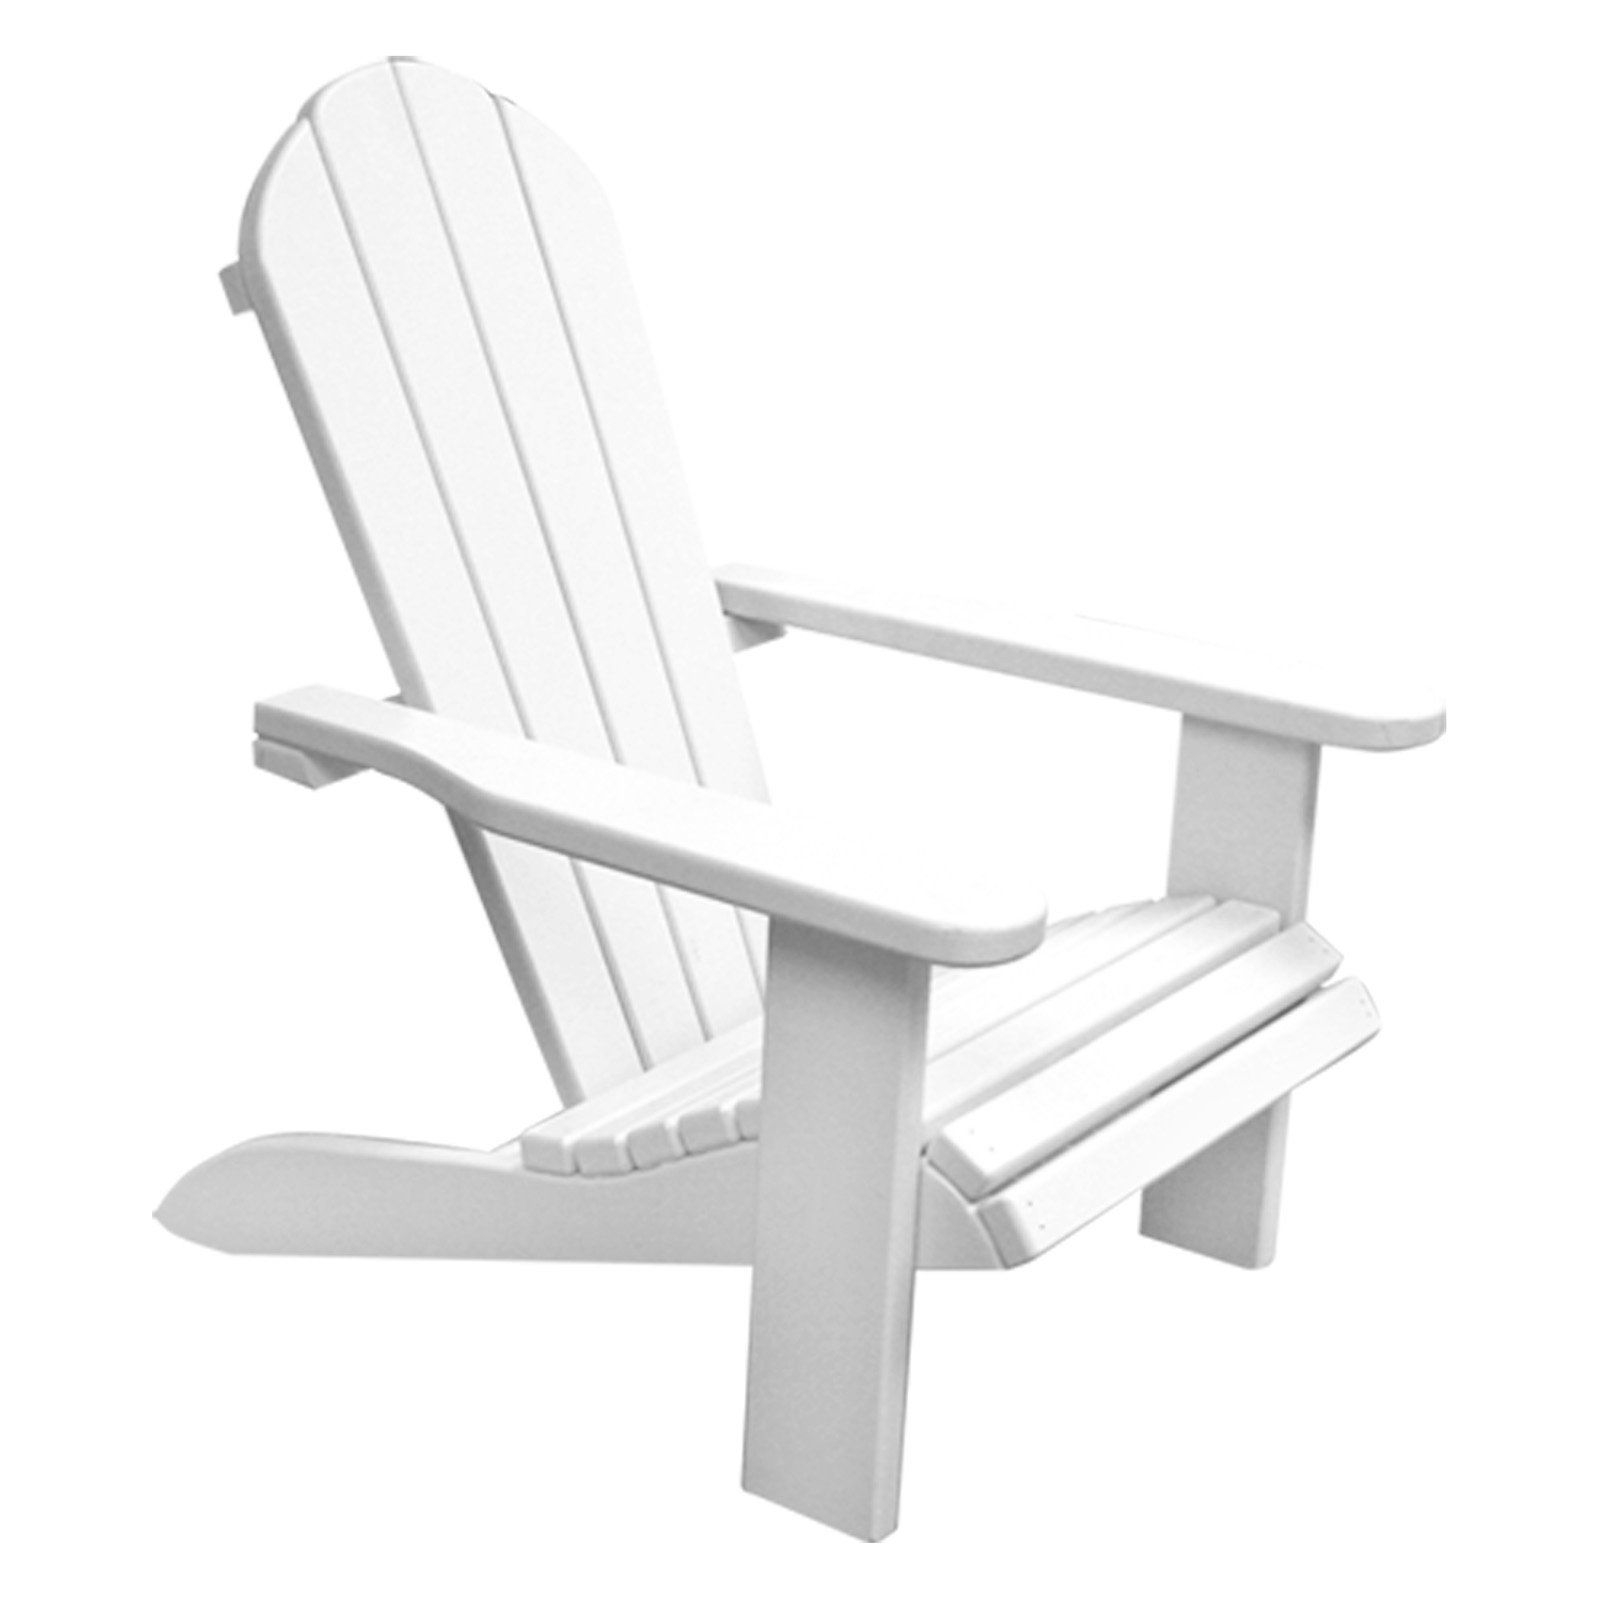 Newco Kids Wooden Outdoor Chair   White $59.99